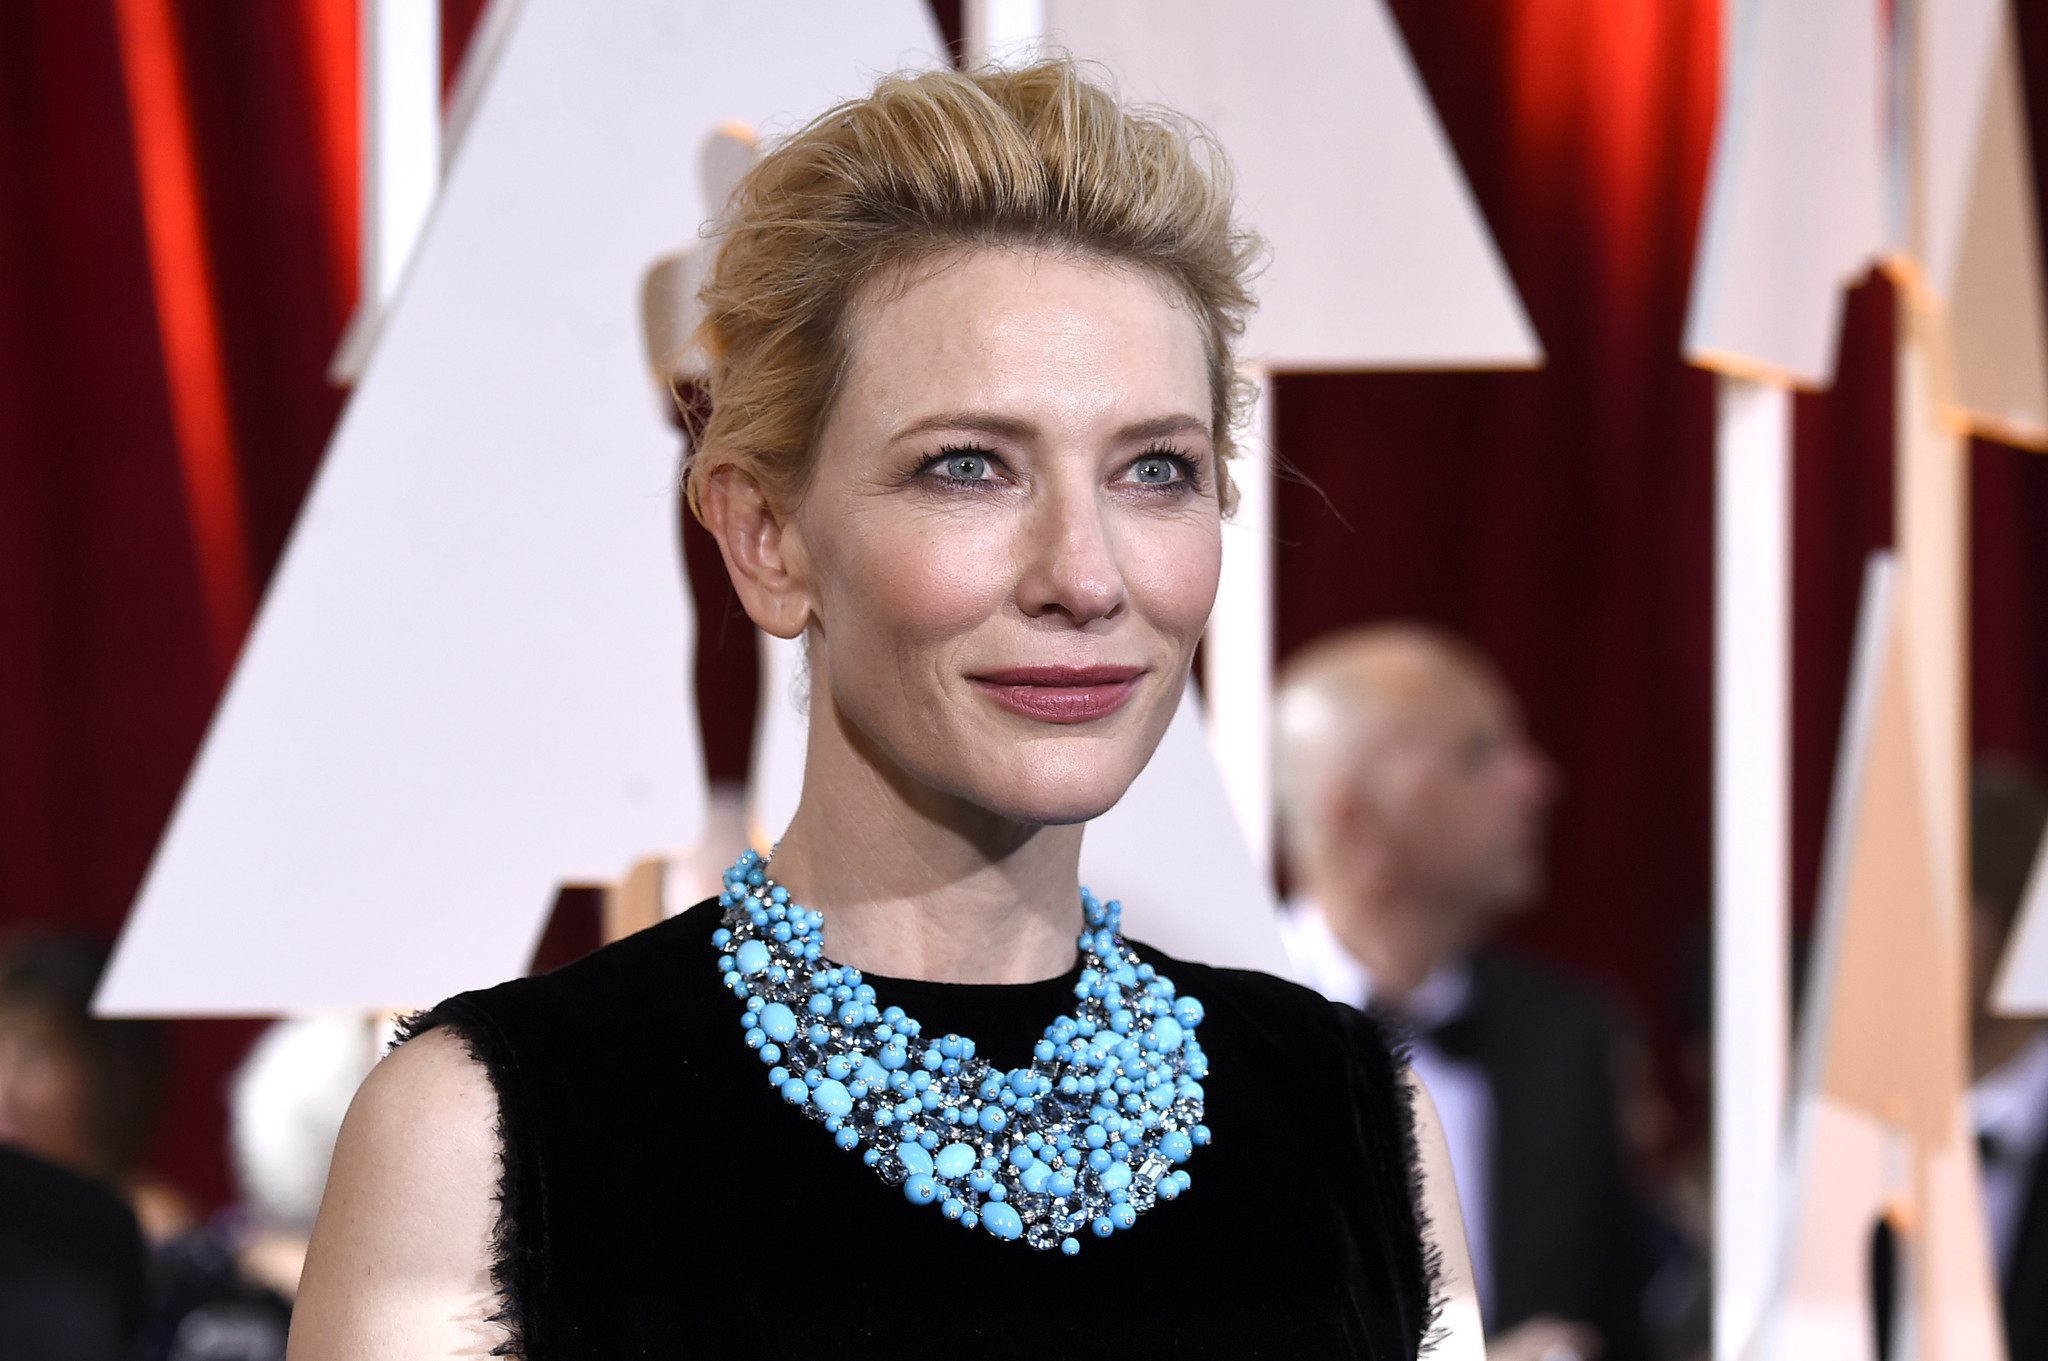 Oscars 2015: Statement jewelry on the red carpet